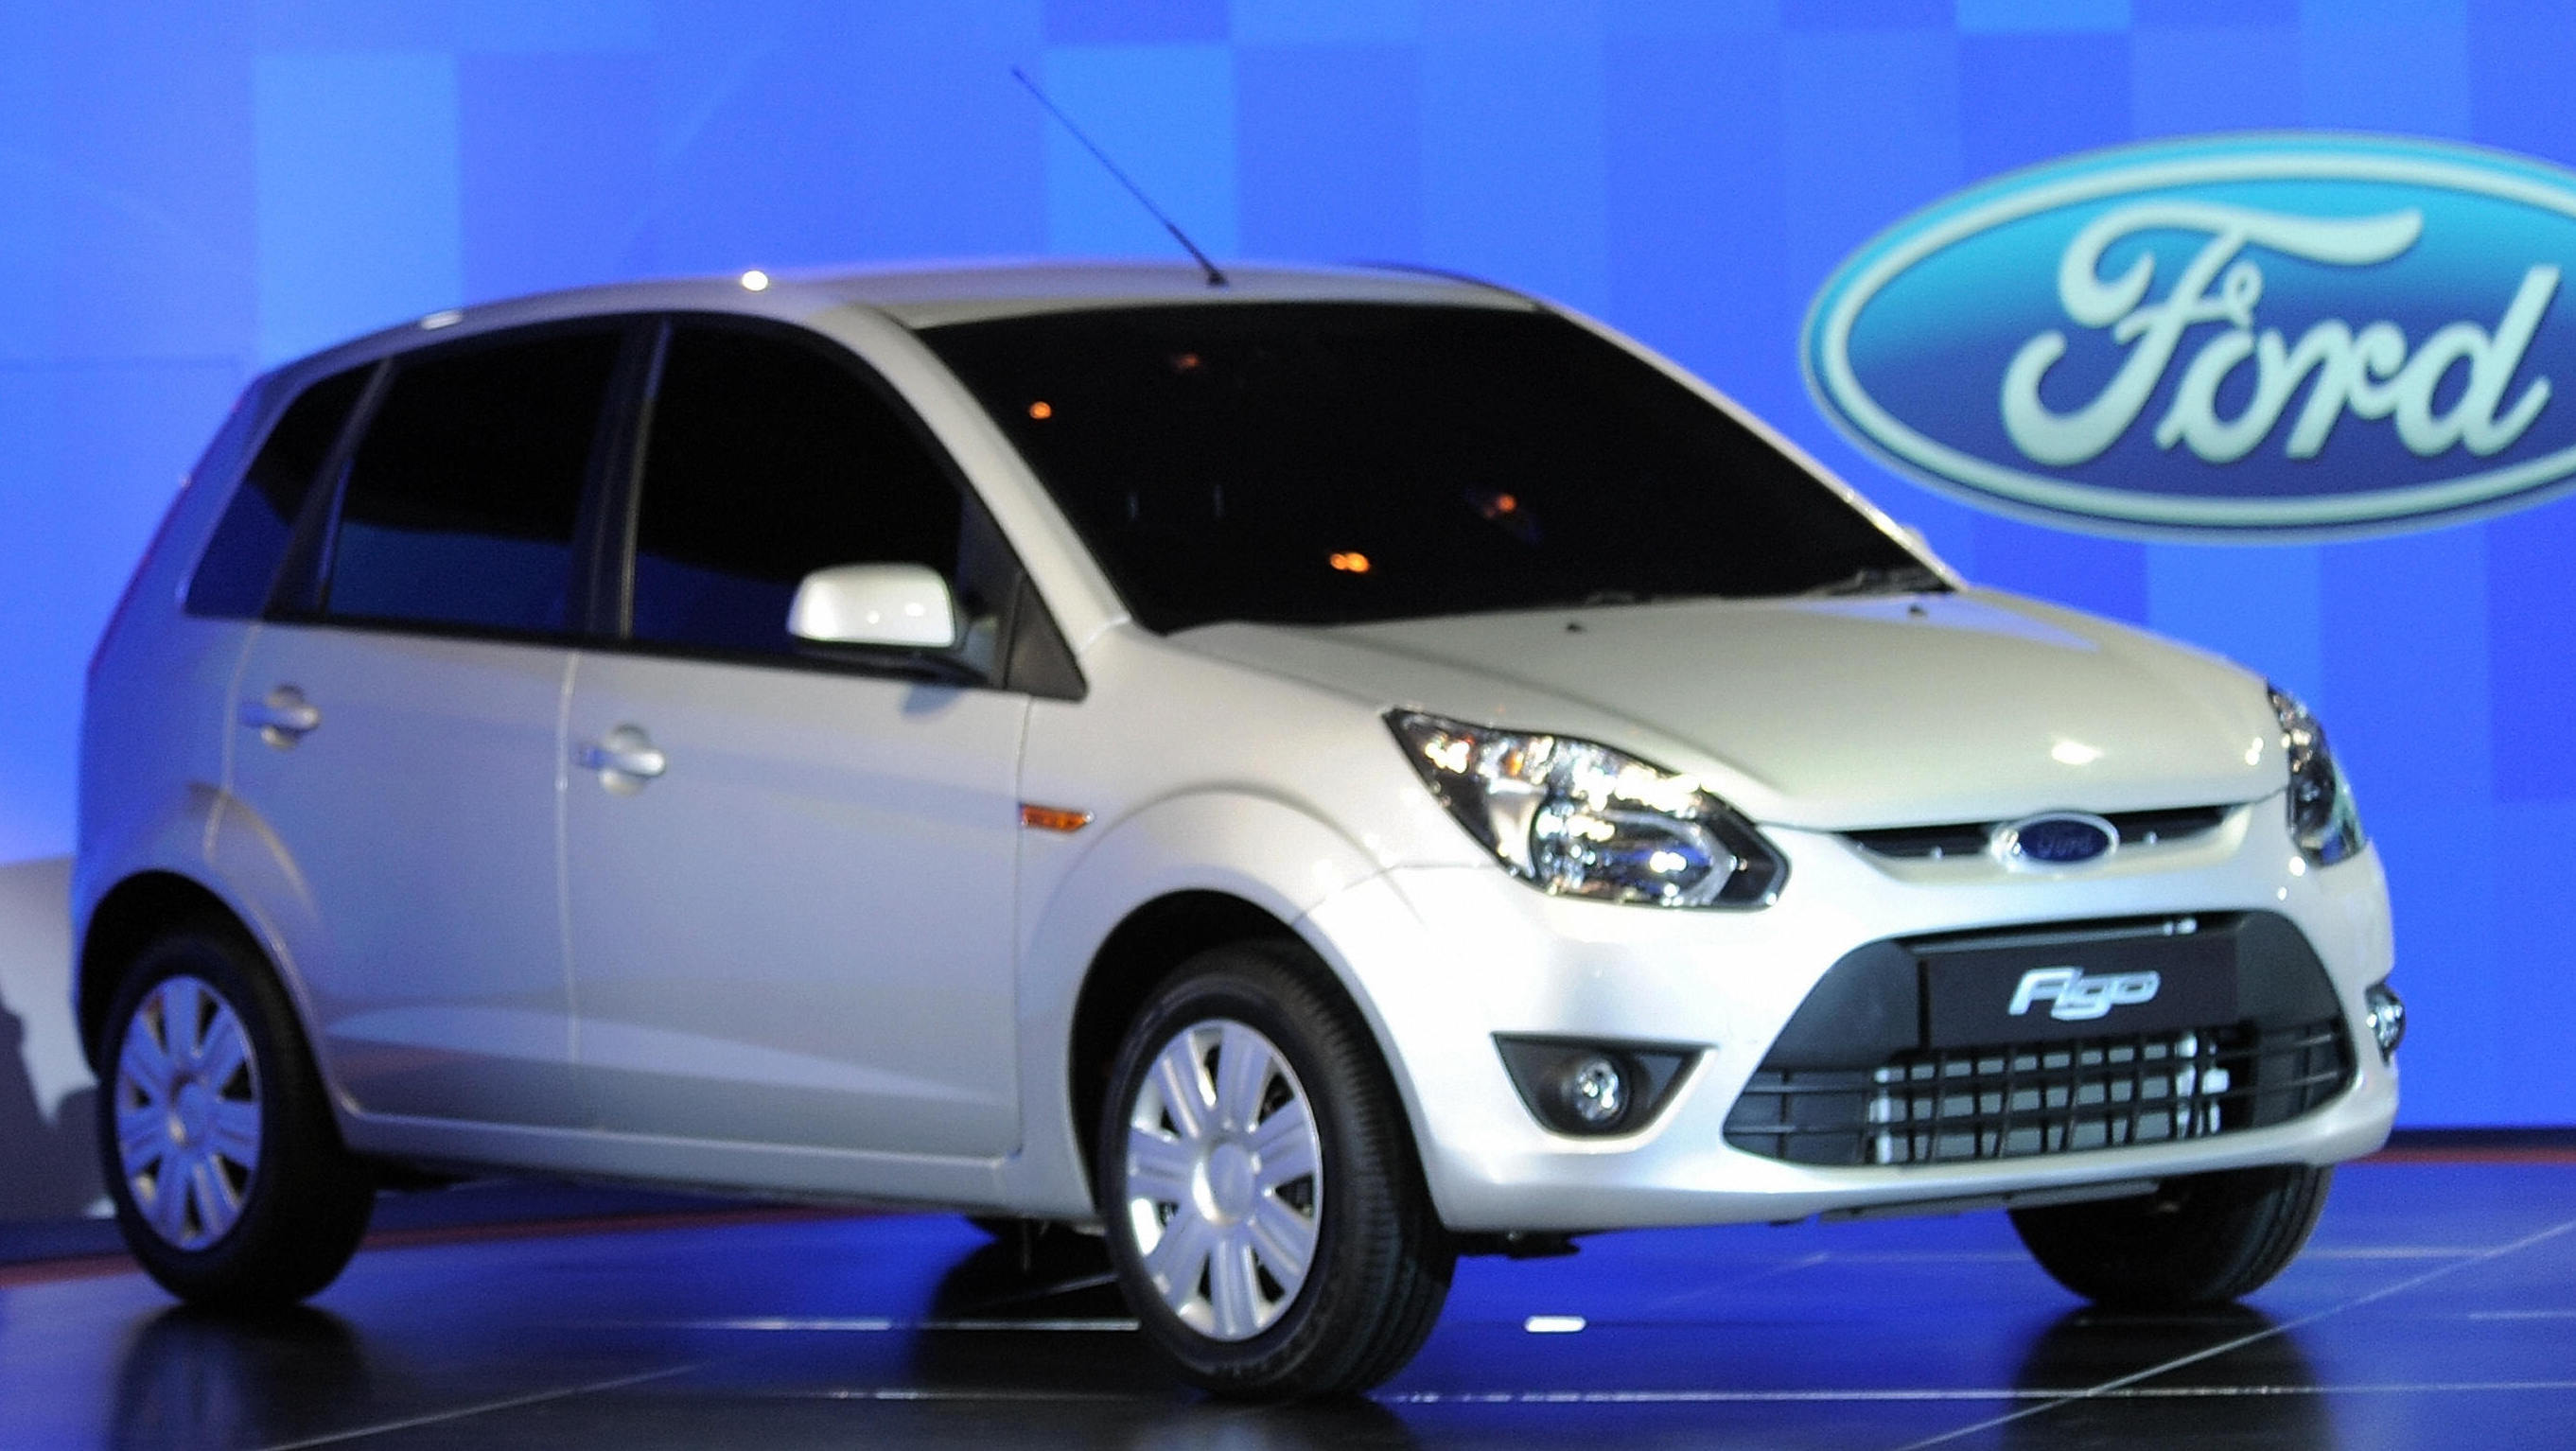 Ford Sorry For Mocked-up Ads In India Showing Bound And Gagged Women